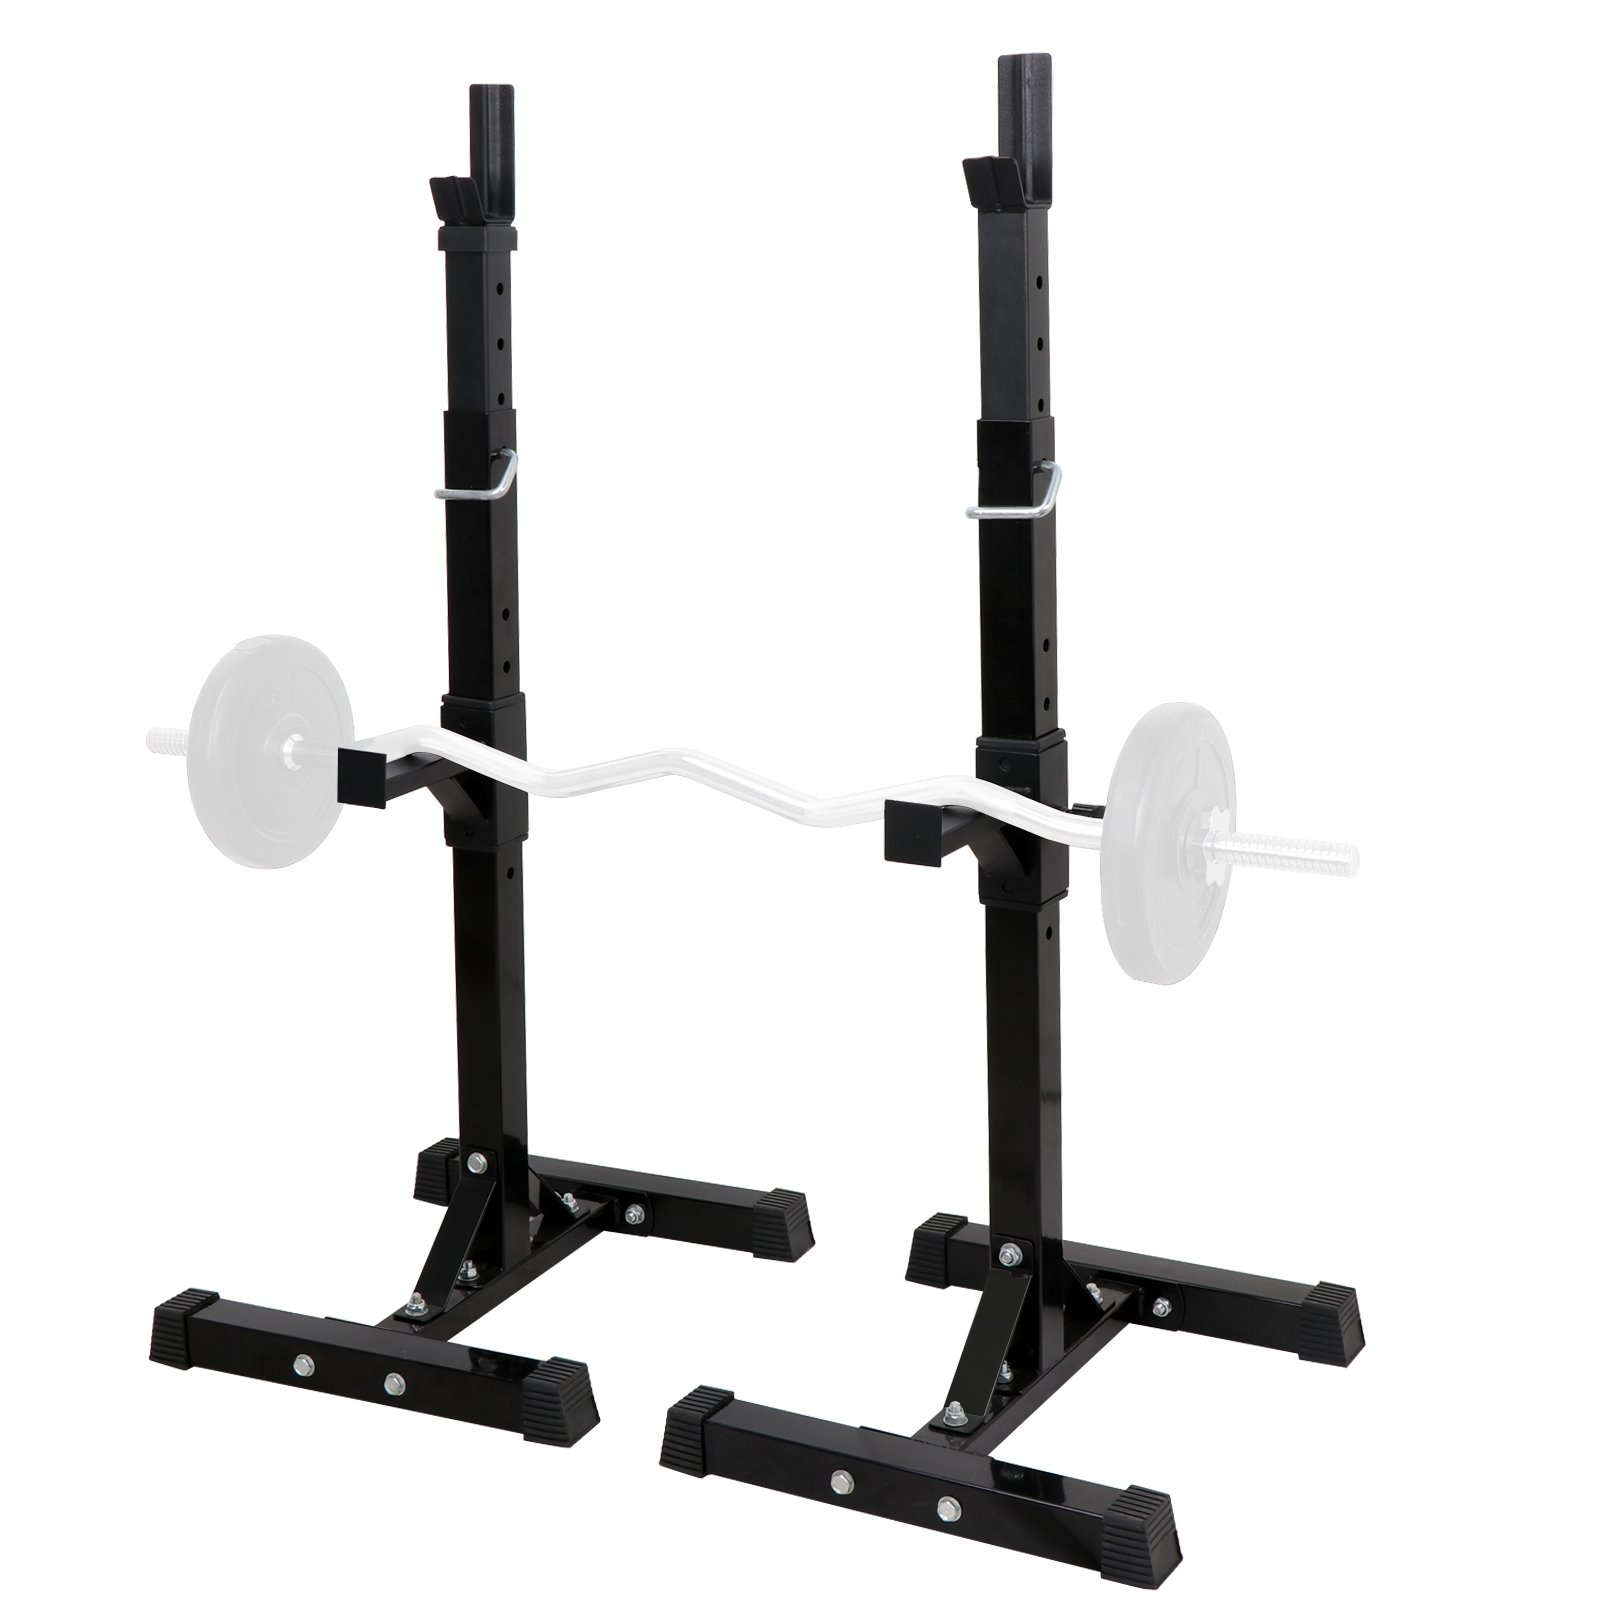 ZENY Set of 2 Barbell Stand Dumbbell Power Rack Adjustable 42''- 66'' Standard Sturdy Steel Squat Stands Fitness Free Bench Press Stands Home Gym Exercise Fitness Training